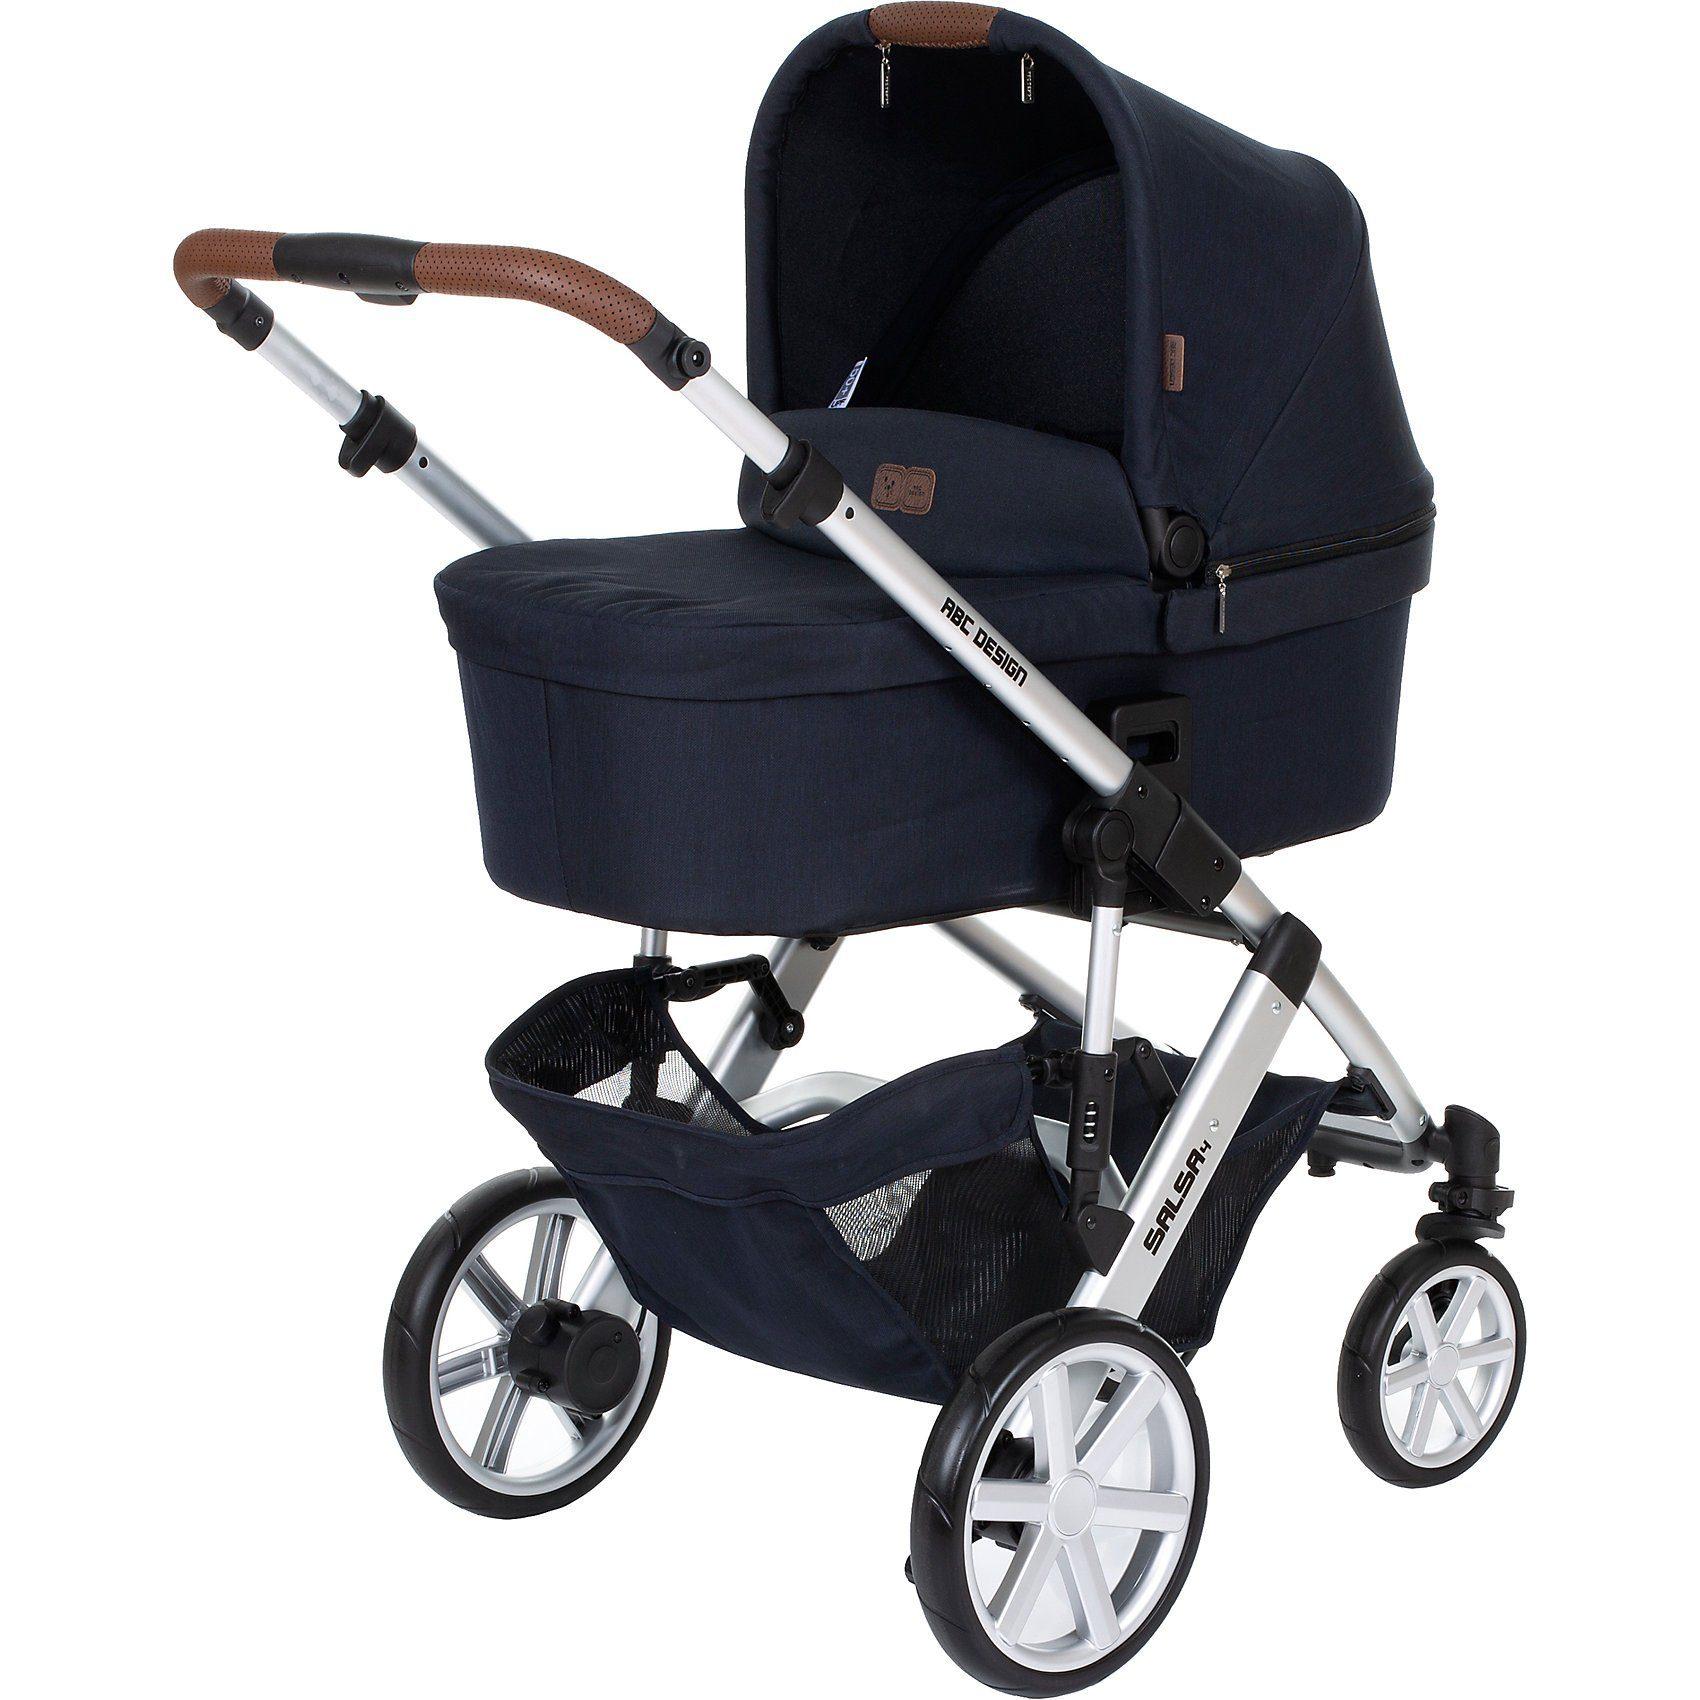 ABC Design Kombi Kinderwagen Salsa 4, shadow, 2019